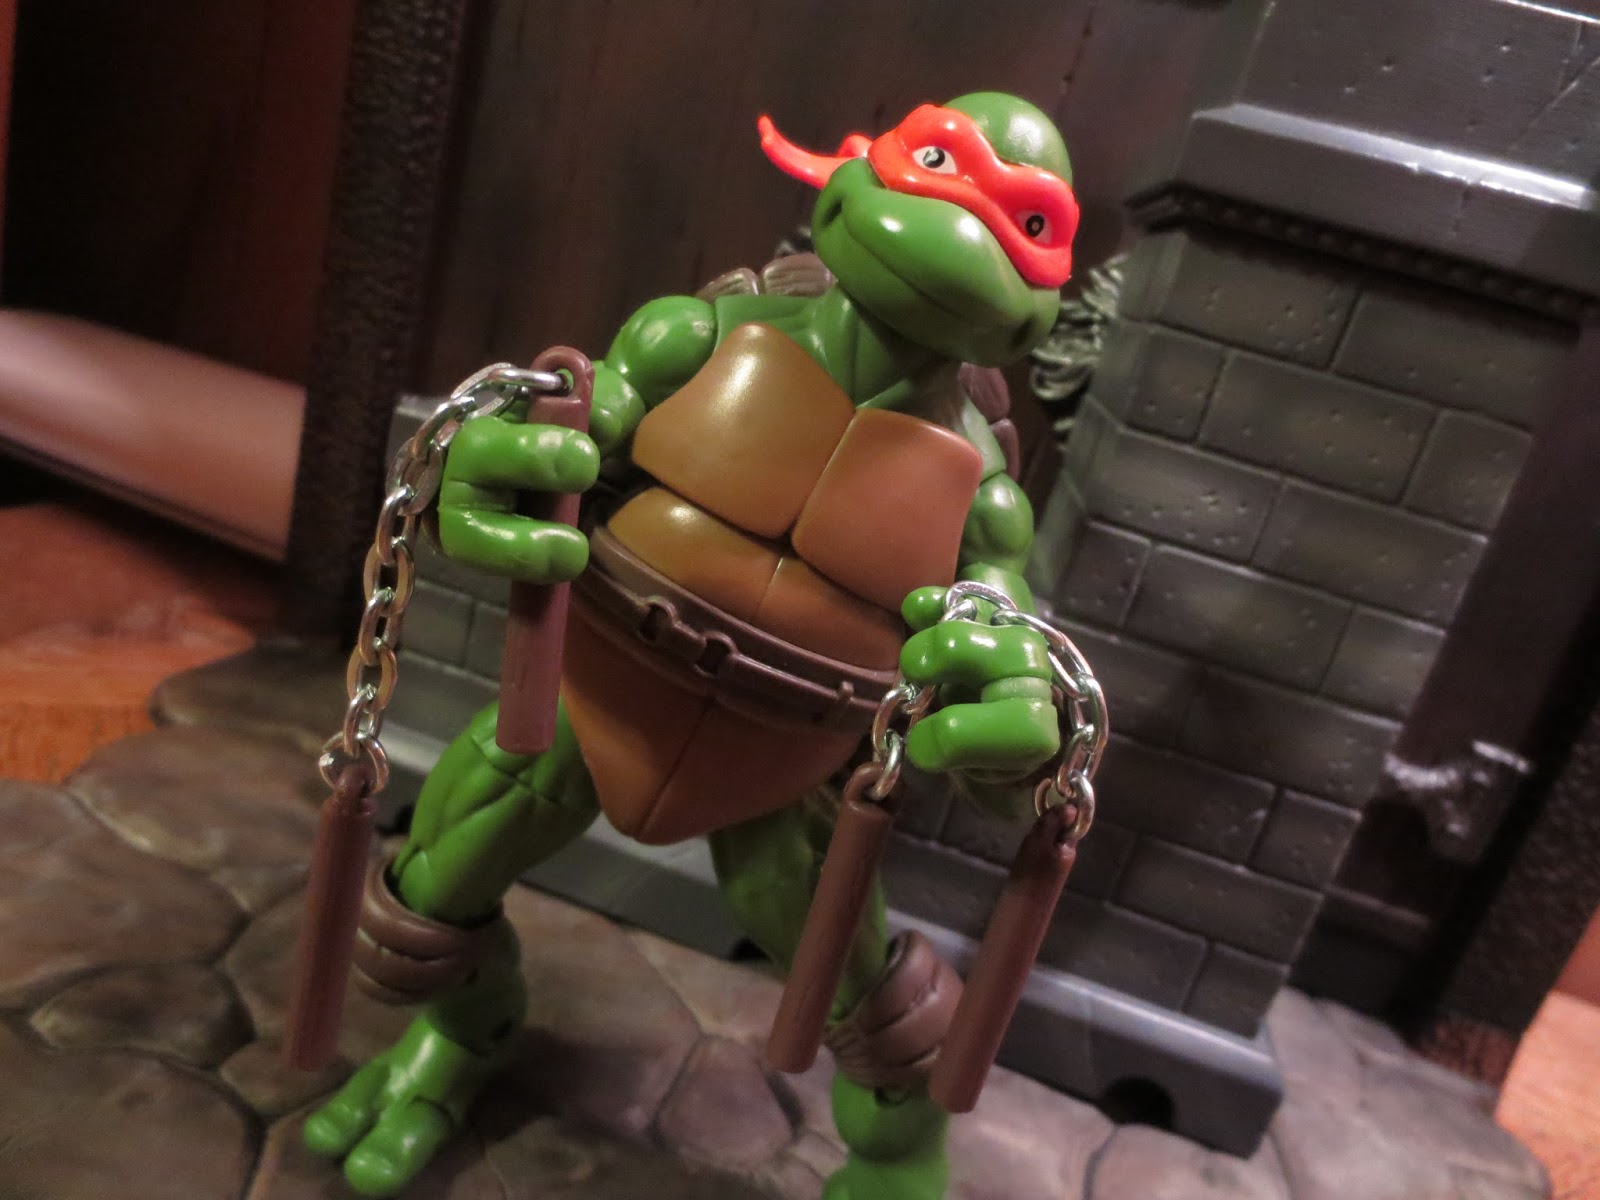 Retro review teenage mutant ninja turtles ii secret of the ooze -  Based Classic Collection Figures I Also Like That Playmates Did Use Different Skin Tones For The Turtles That Match Their Vintage Toys